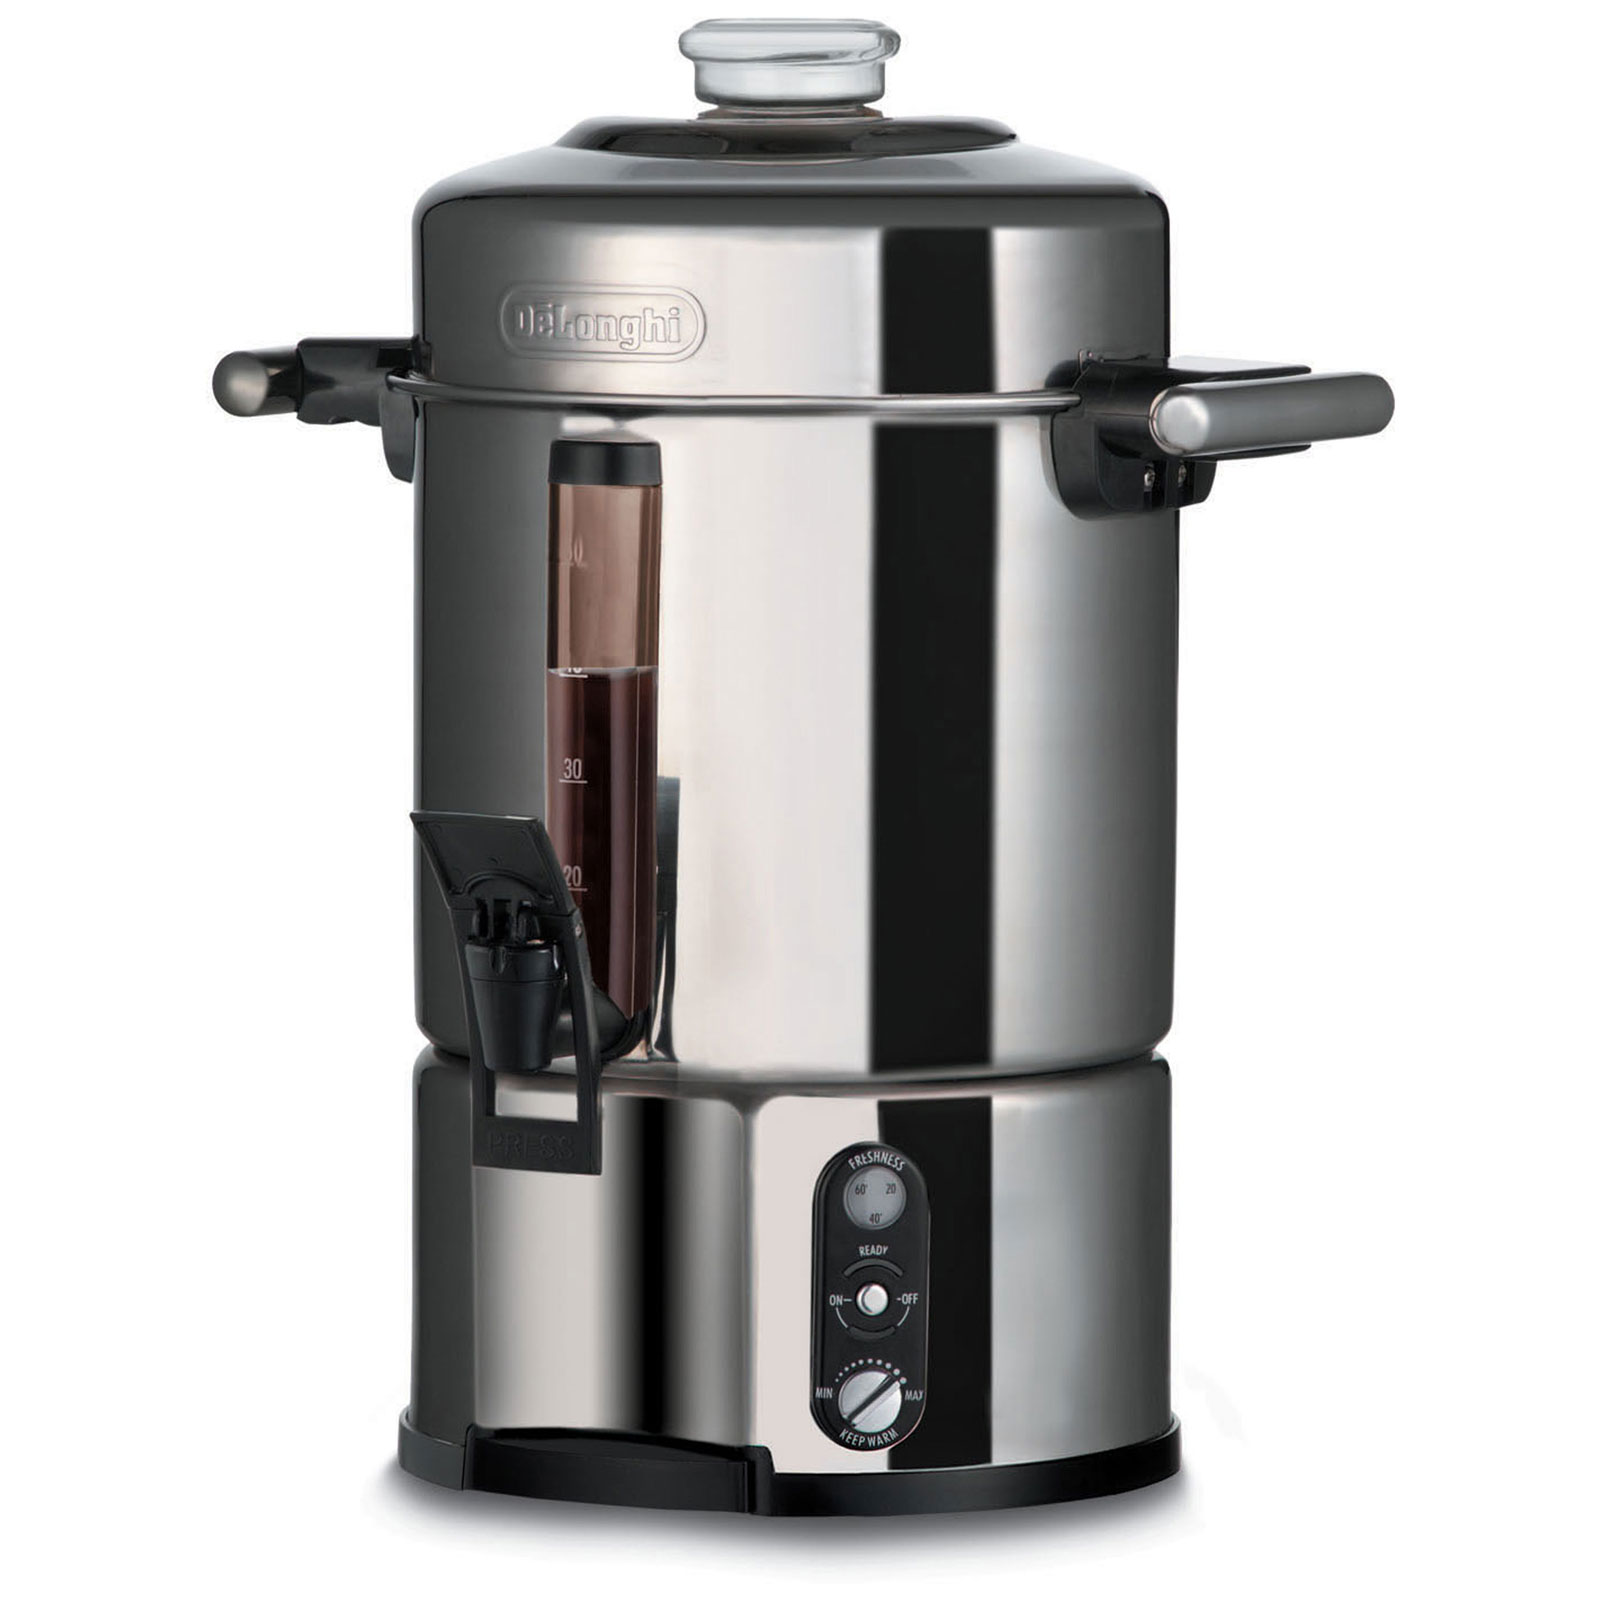 Delonghi Coffee Maker 60 Cup : DeLonghi DCU500T 20-50 Cup Coffee Urn at Hayneedle